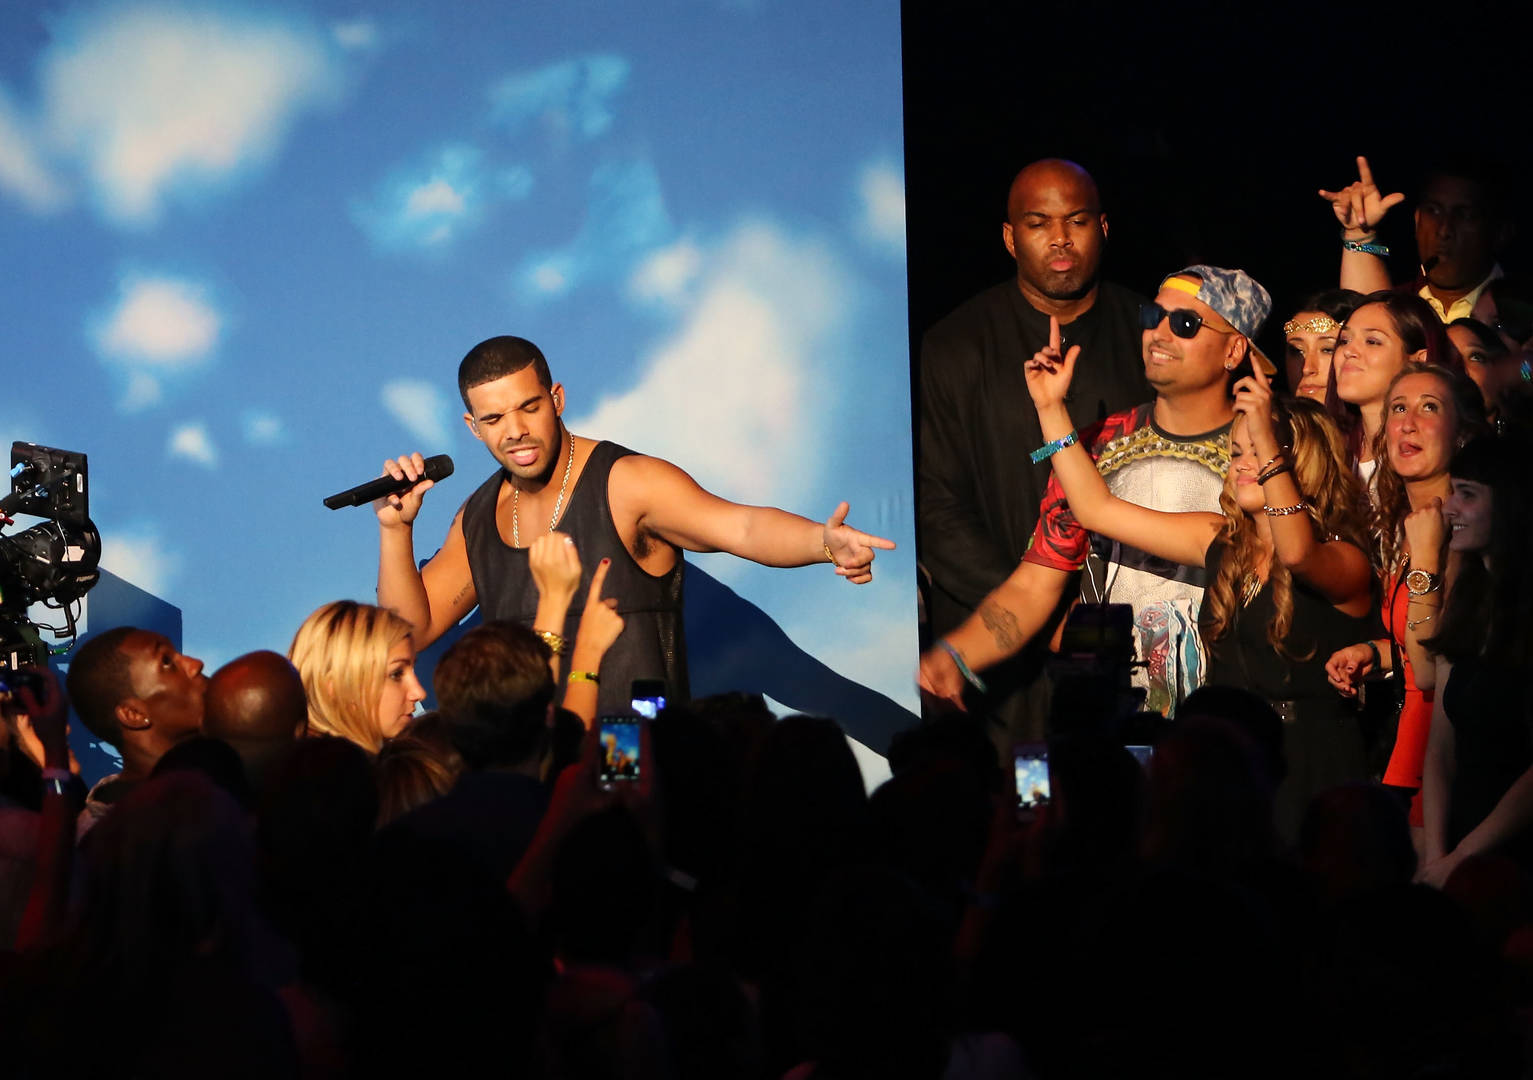 Drake performs onstage during the 2013 MTV Video Music Awards at the Barclays Center on August 25, 2013 in the Brooklyn borough of New York City.